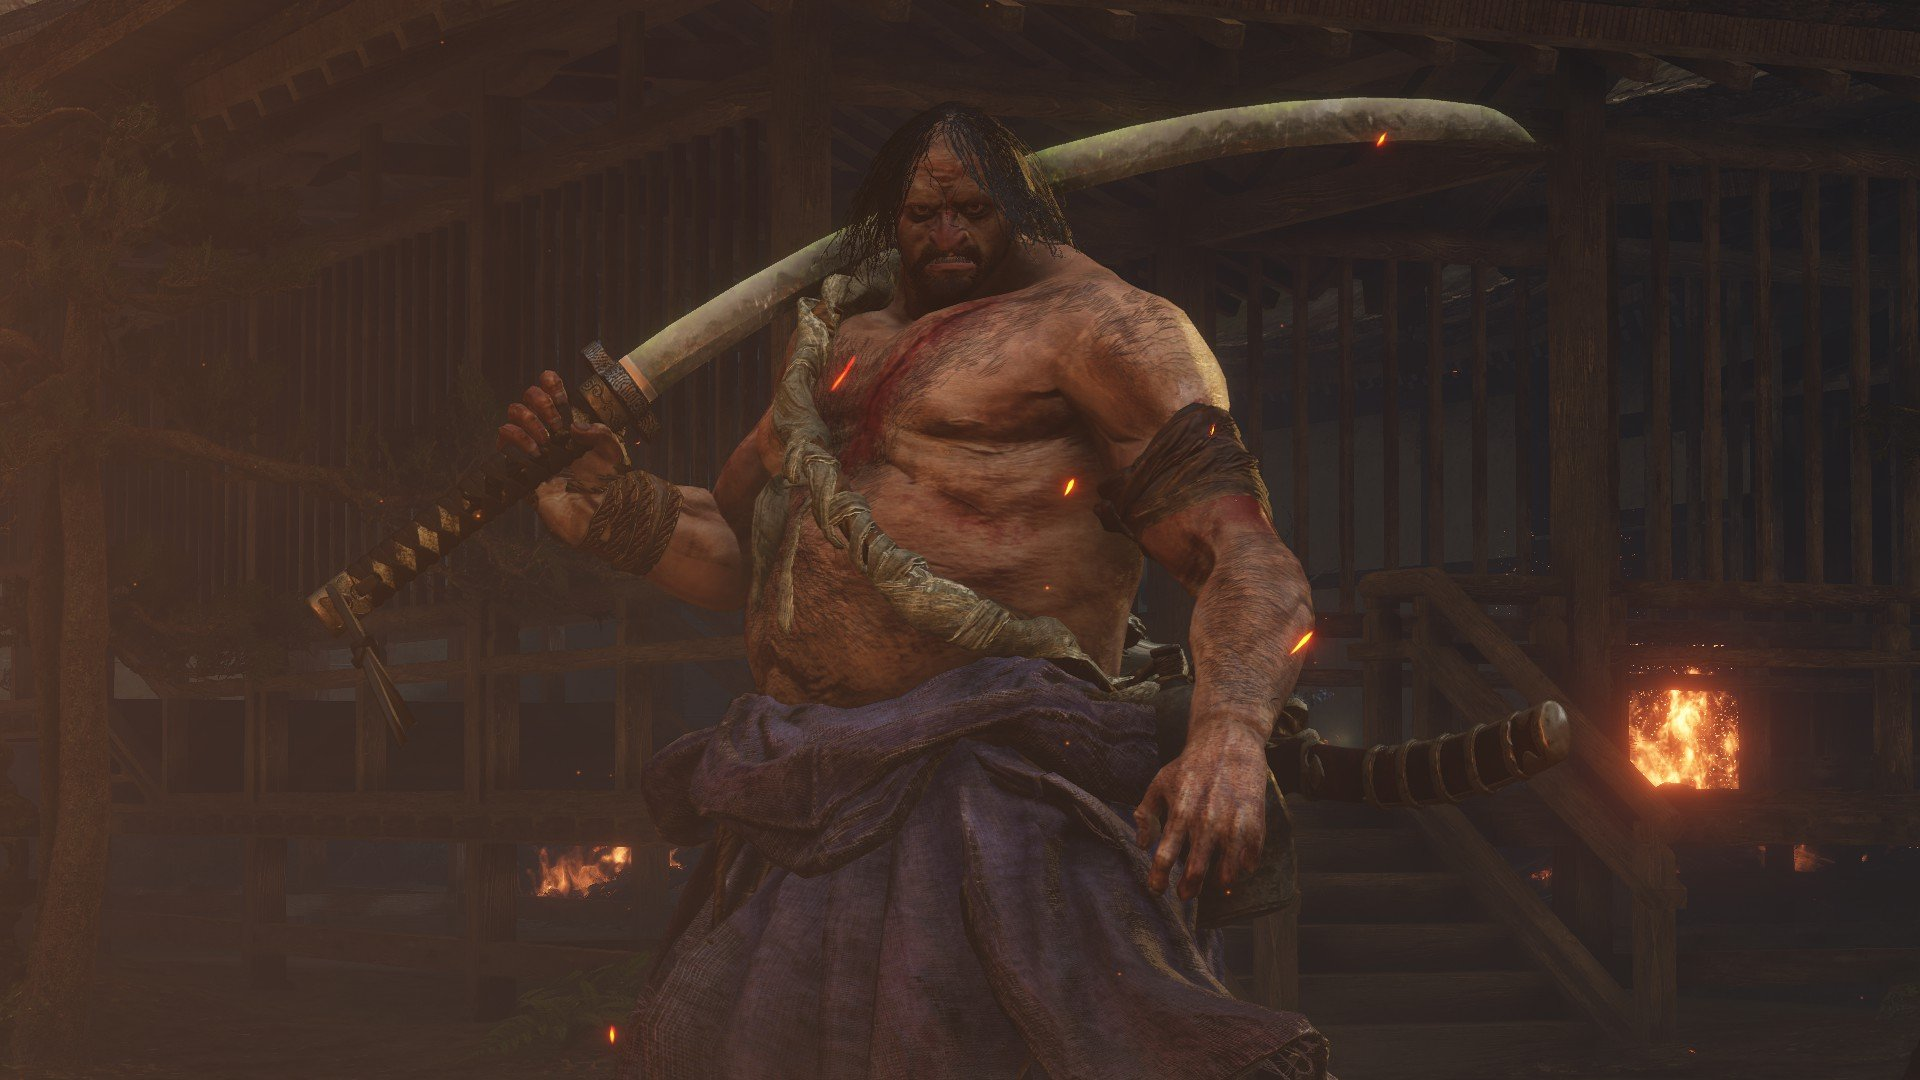 Juzou the Drunkard | Sekiro Shadows Die Twice Wiki